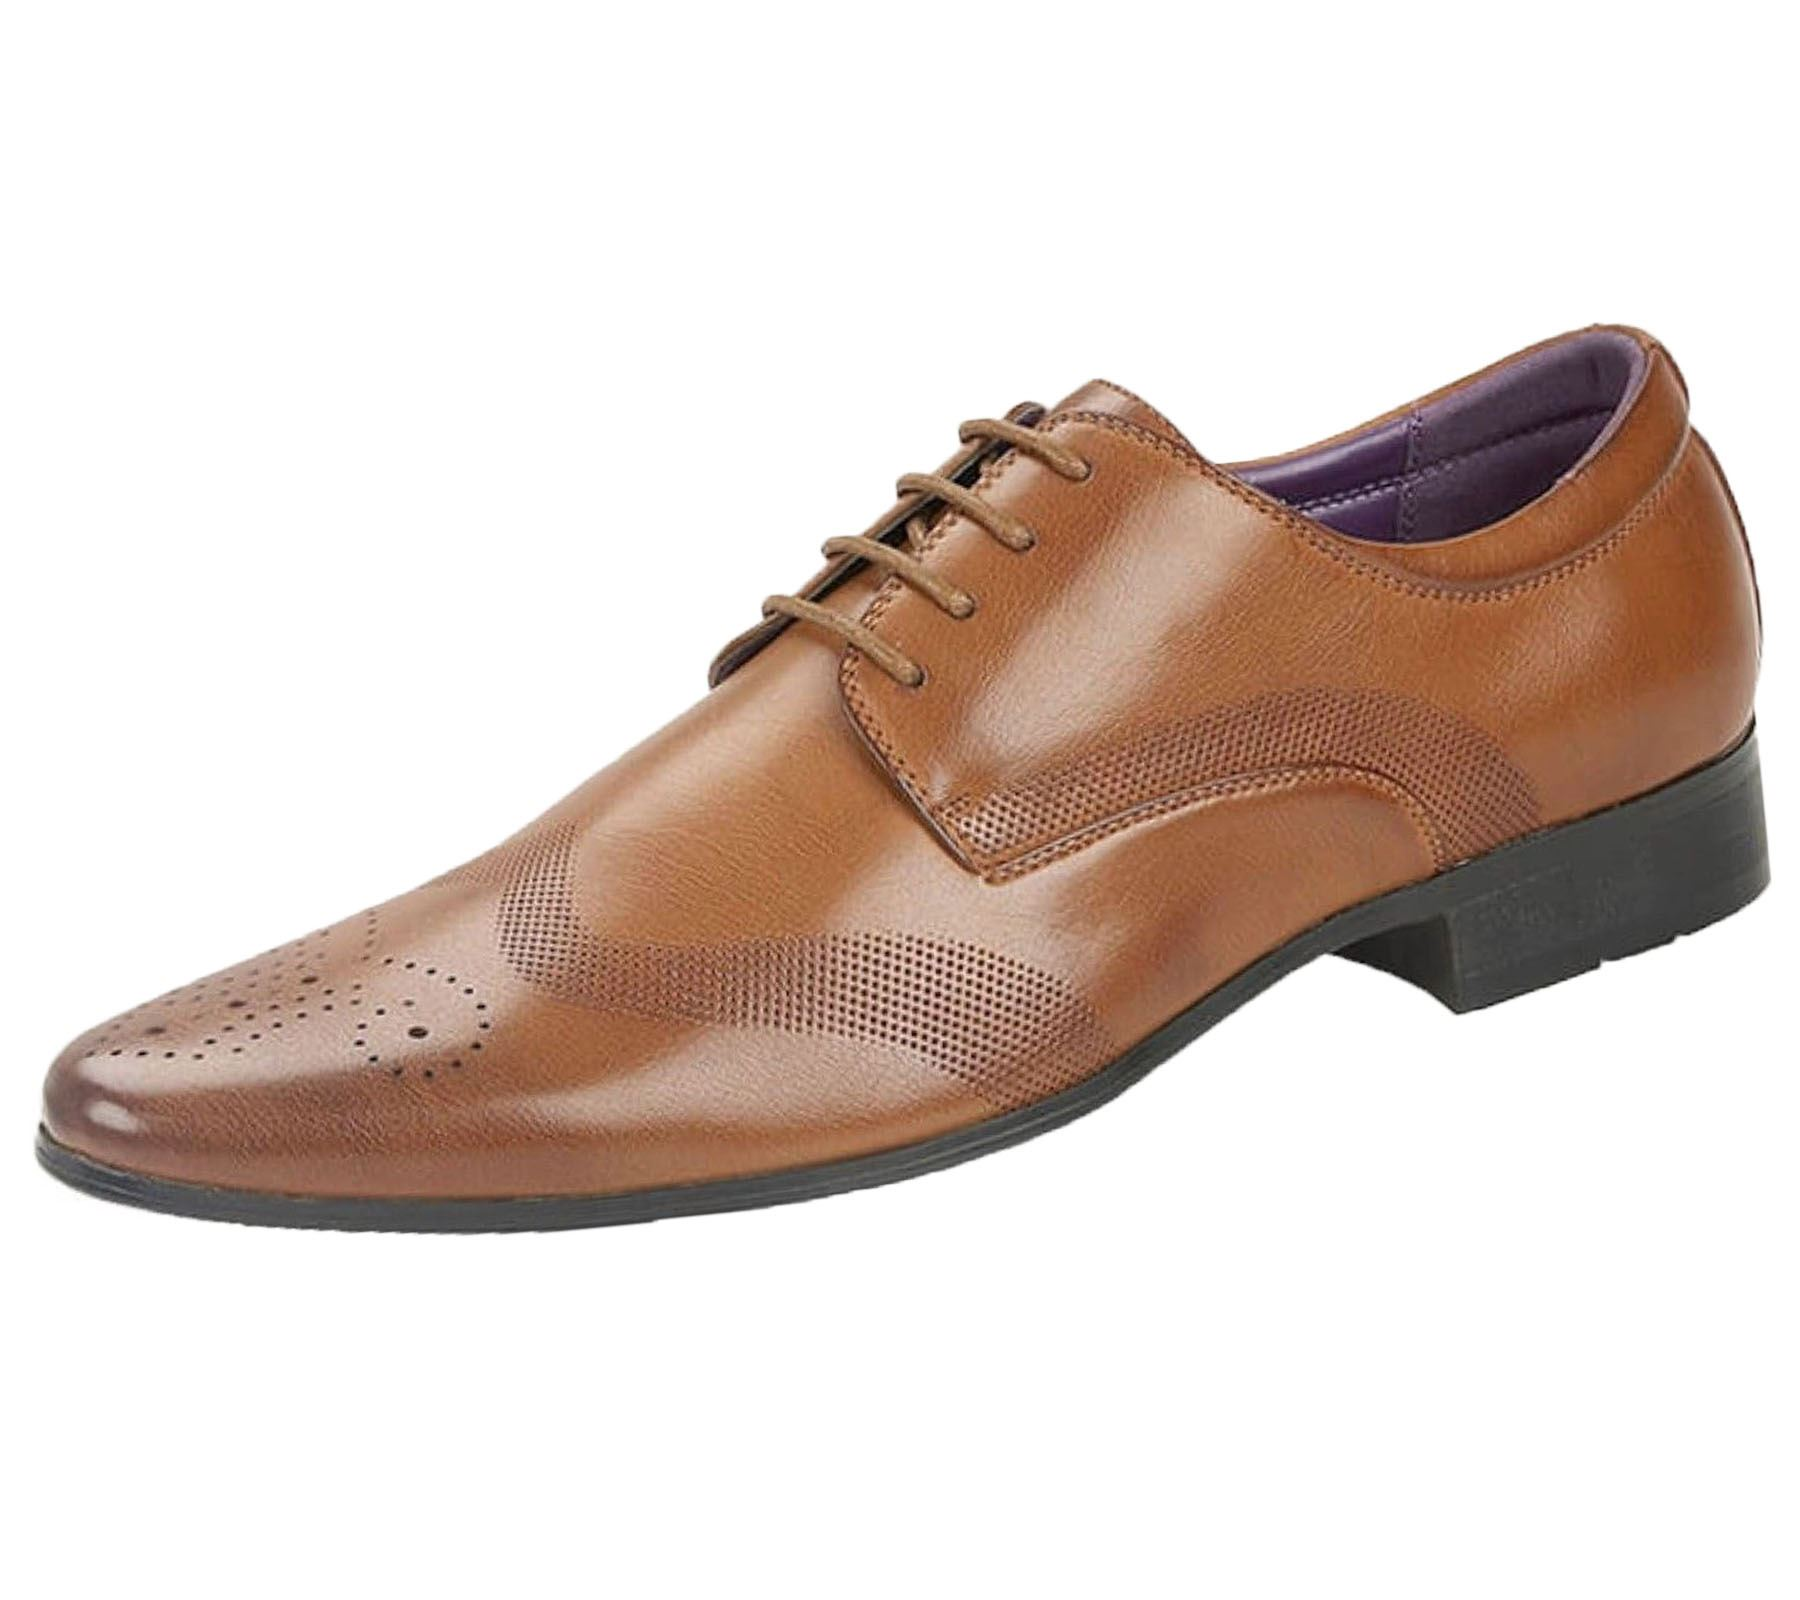 Mens-Brogues-Shoes-Office-Wedding-Formal-Smart-Dress-Shoes-New-Size miniatura 7